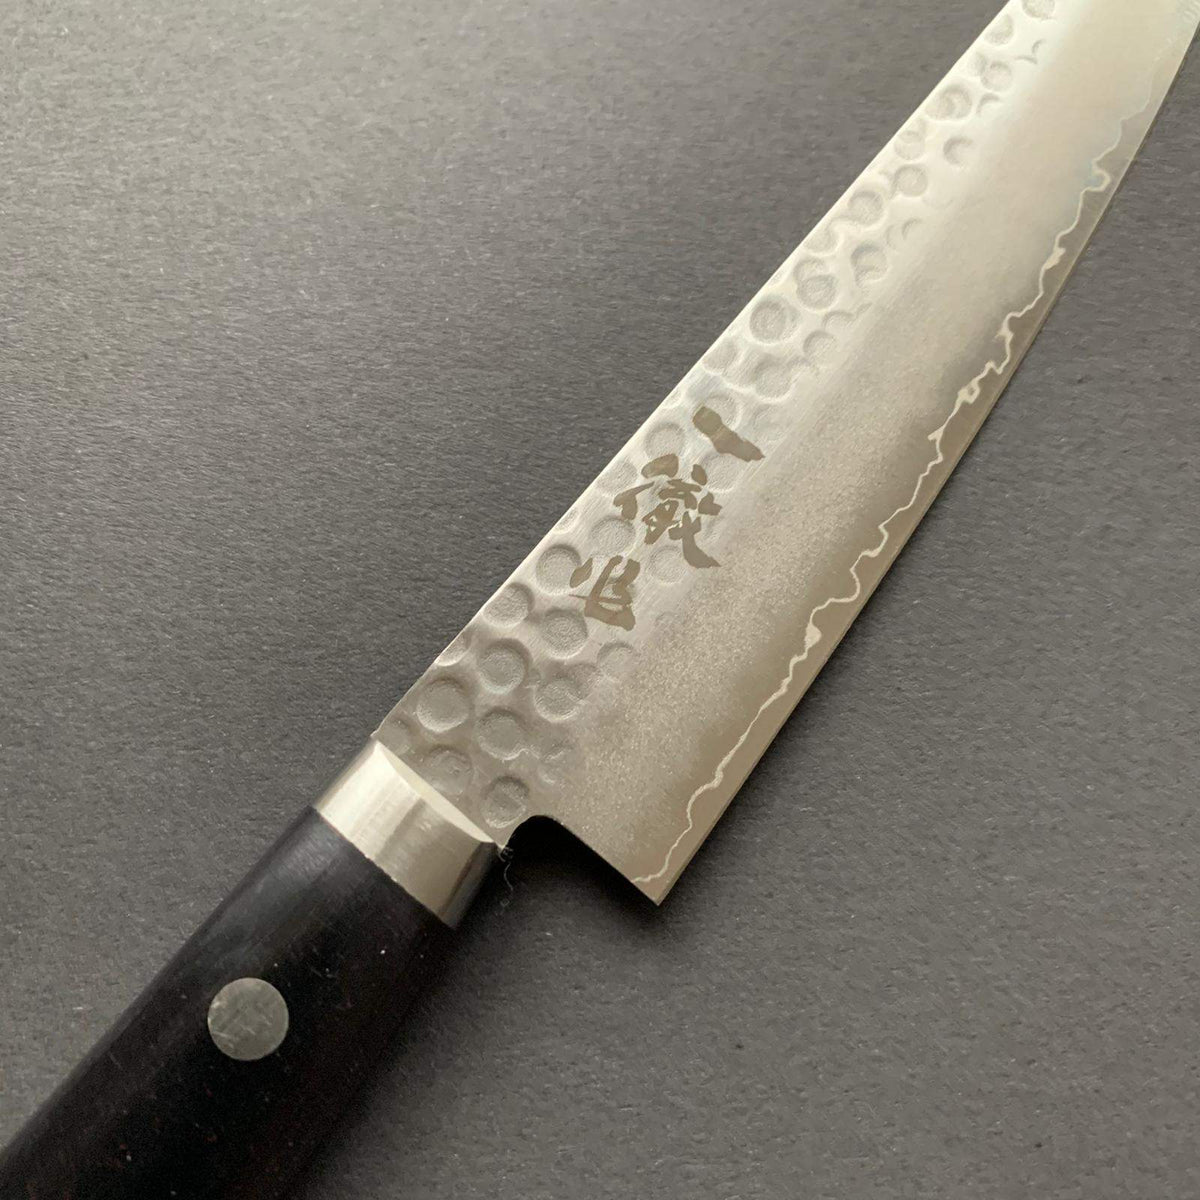 Petty knife, Stainless Steel, Tsuchime finish - Ittetsu